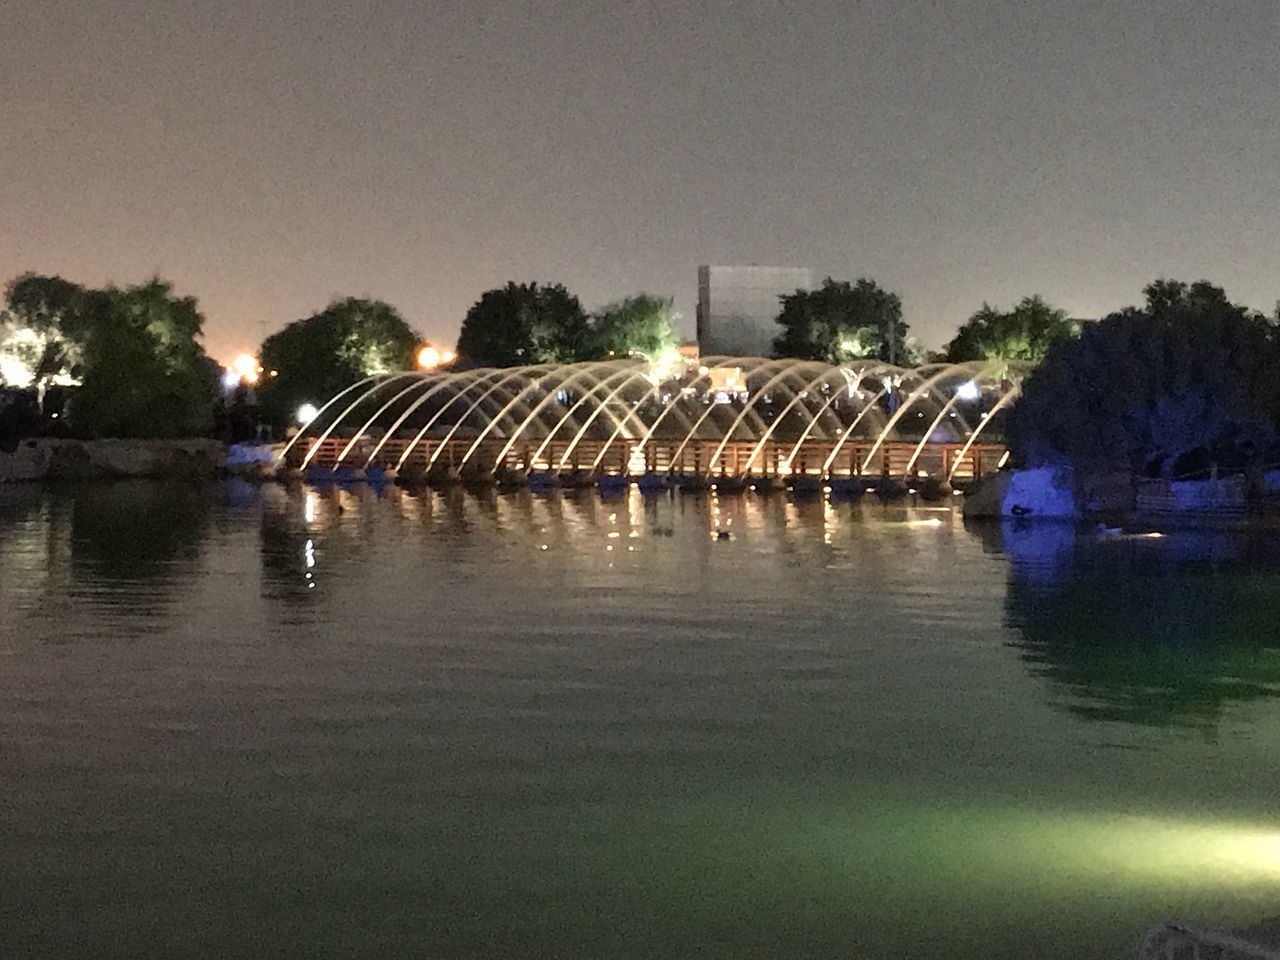 water, tree, night, illuminated, river, waterfront, reflection, architecture, outdoors, large group of people, built structure, clear sky, bridge - man made structure, sky, nature, reflecting pool, building exterior, city, people